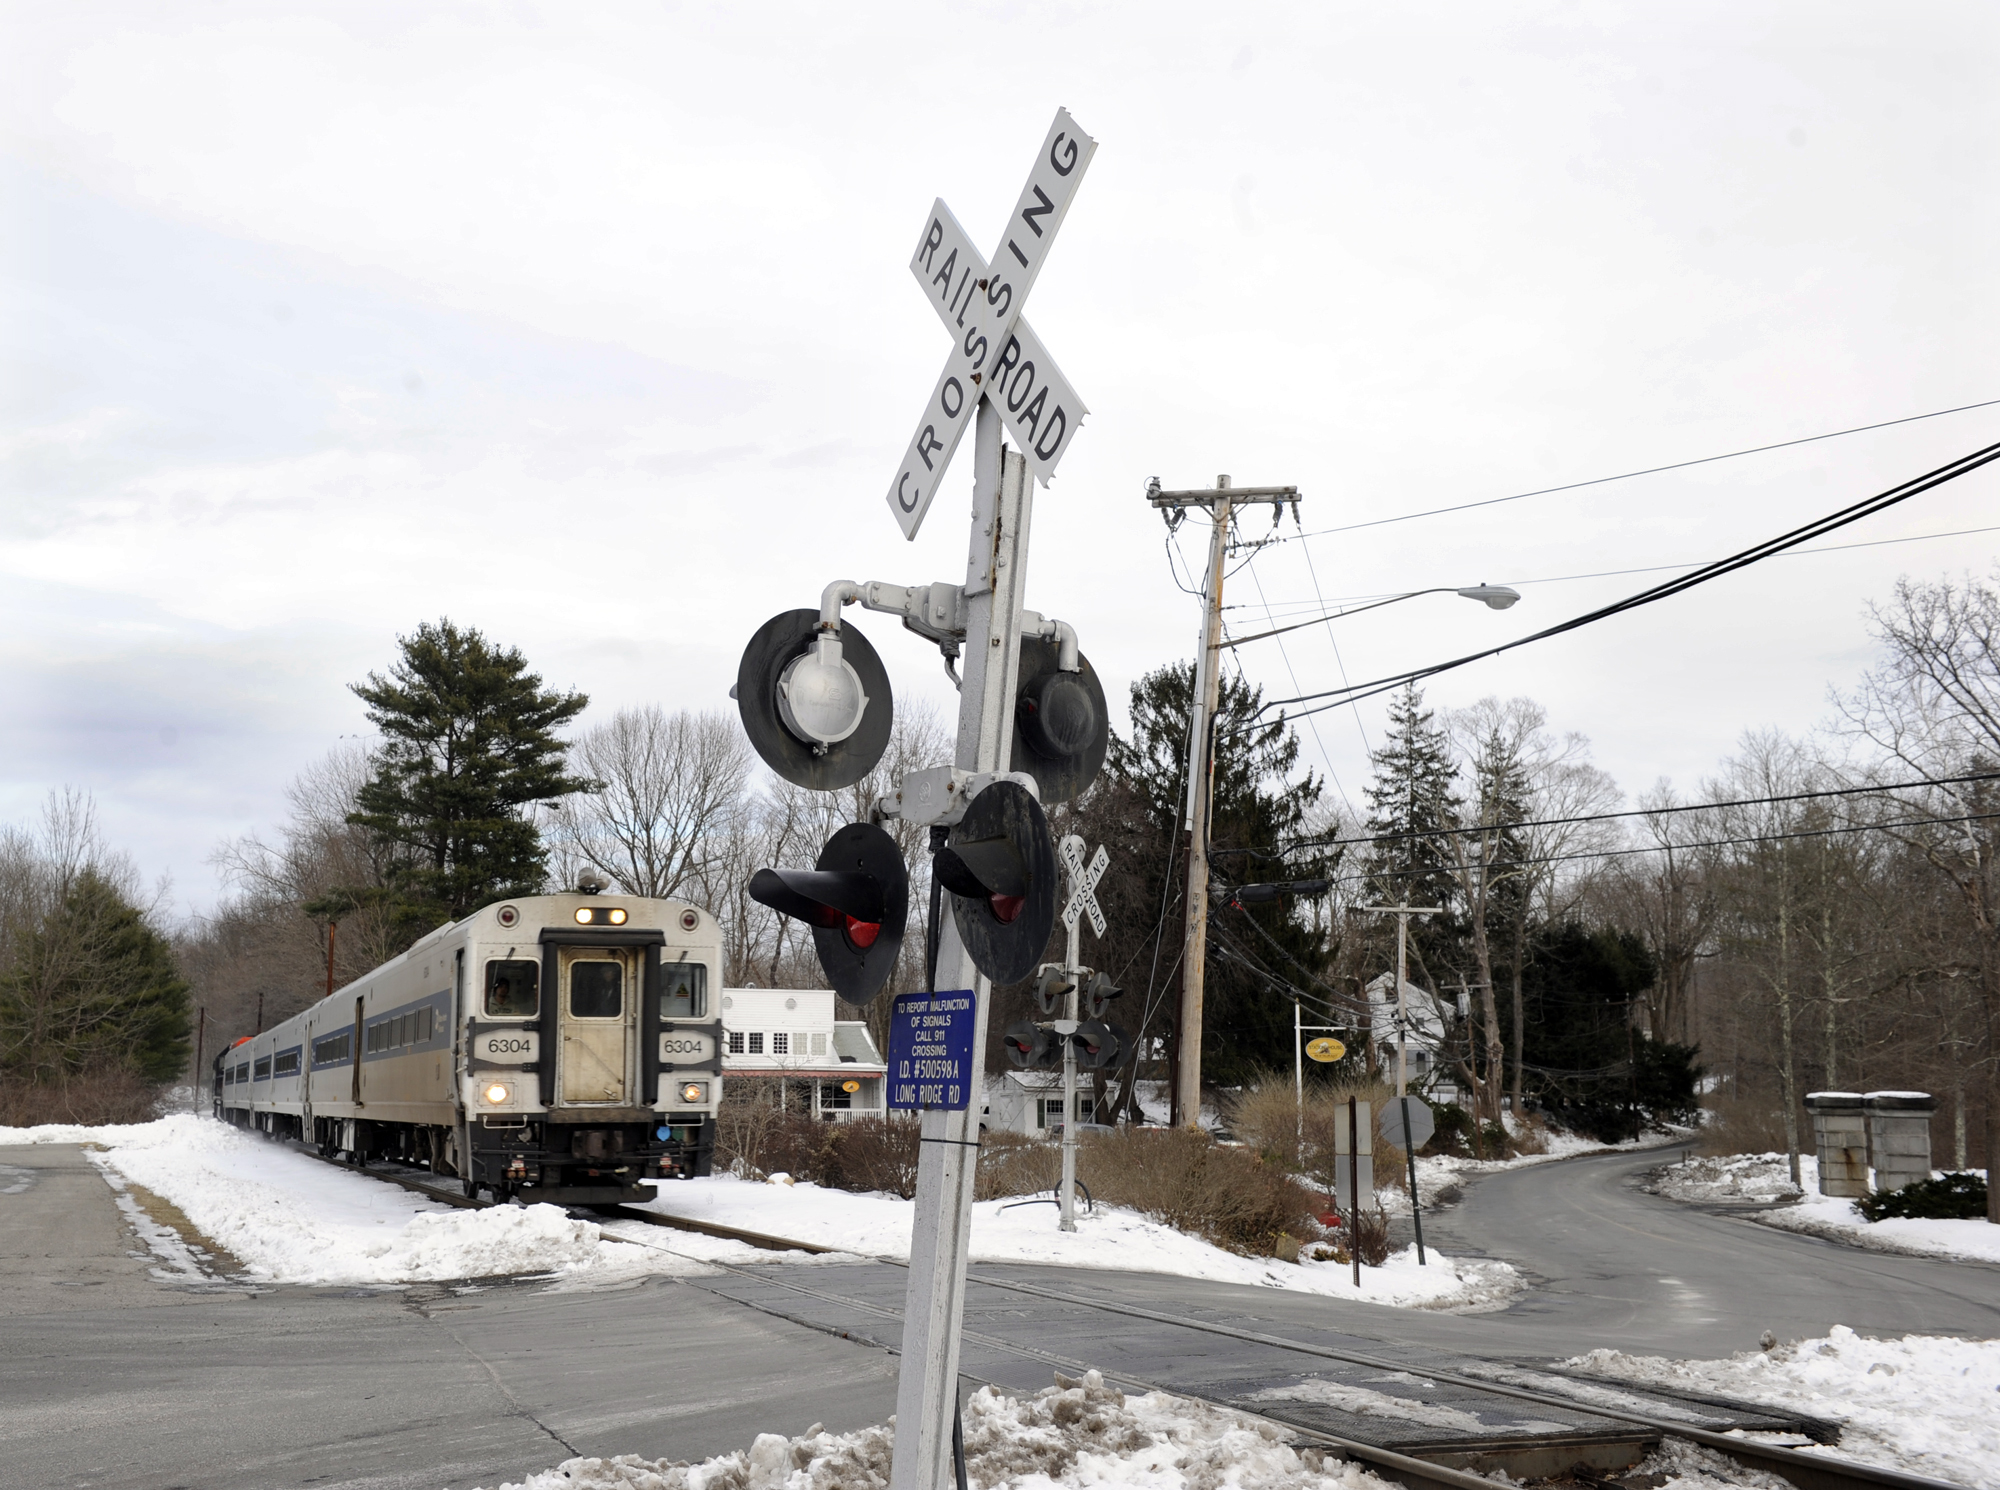 No gate at railroad crossing with most accidents